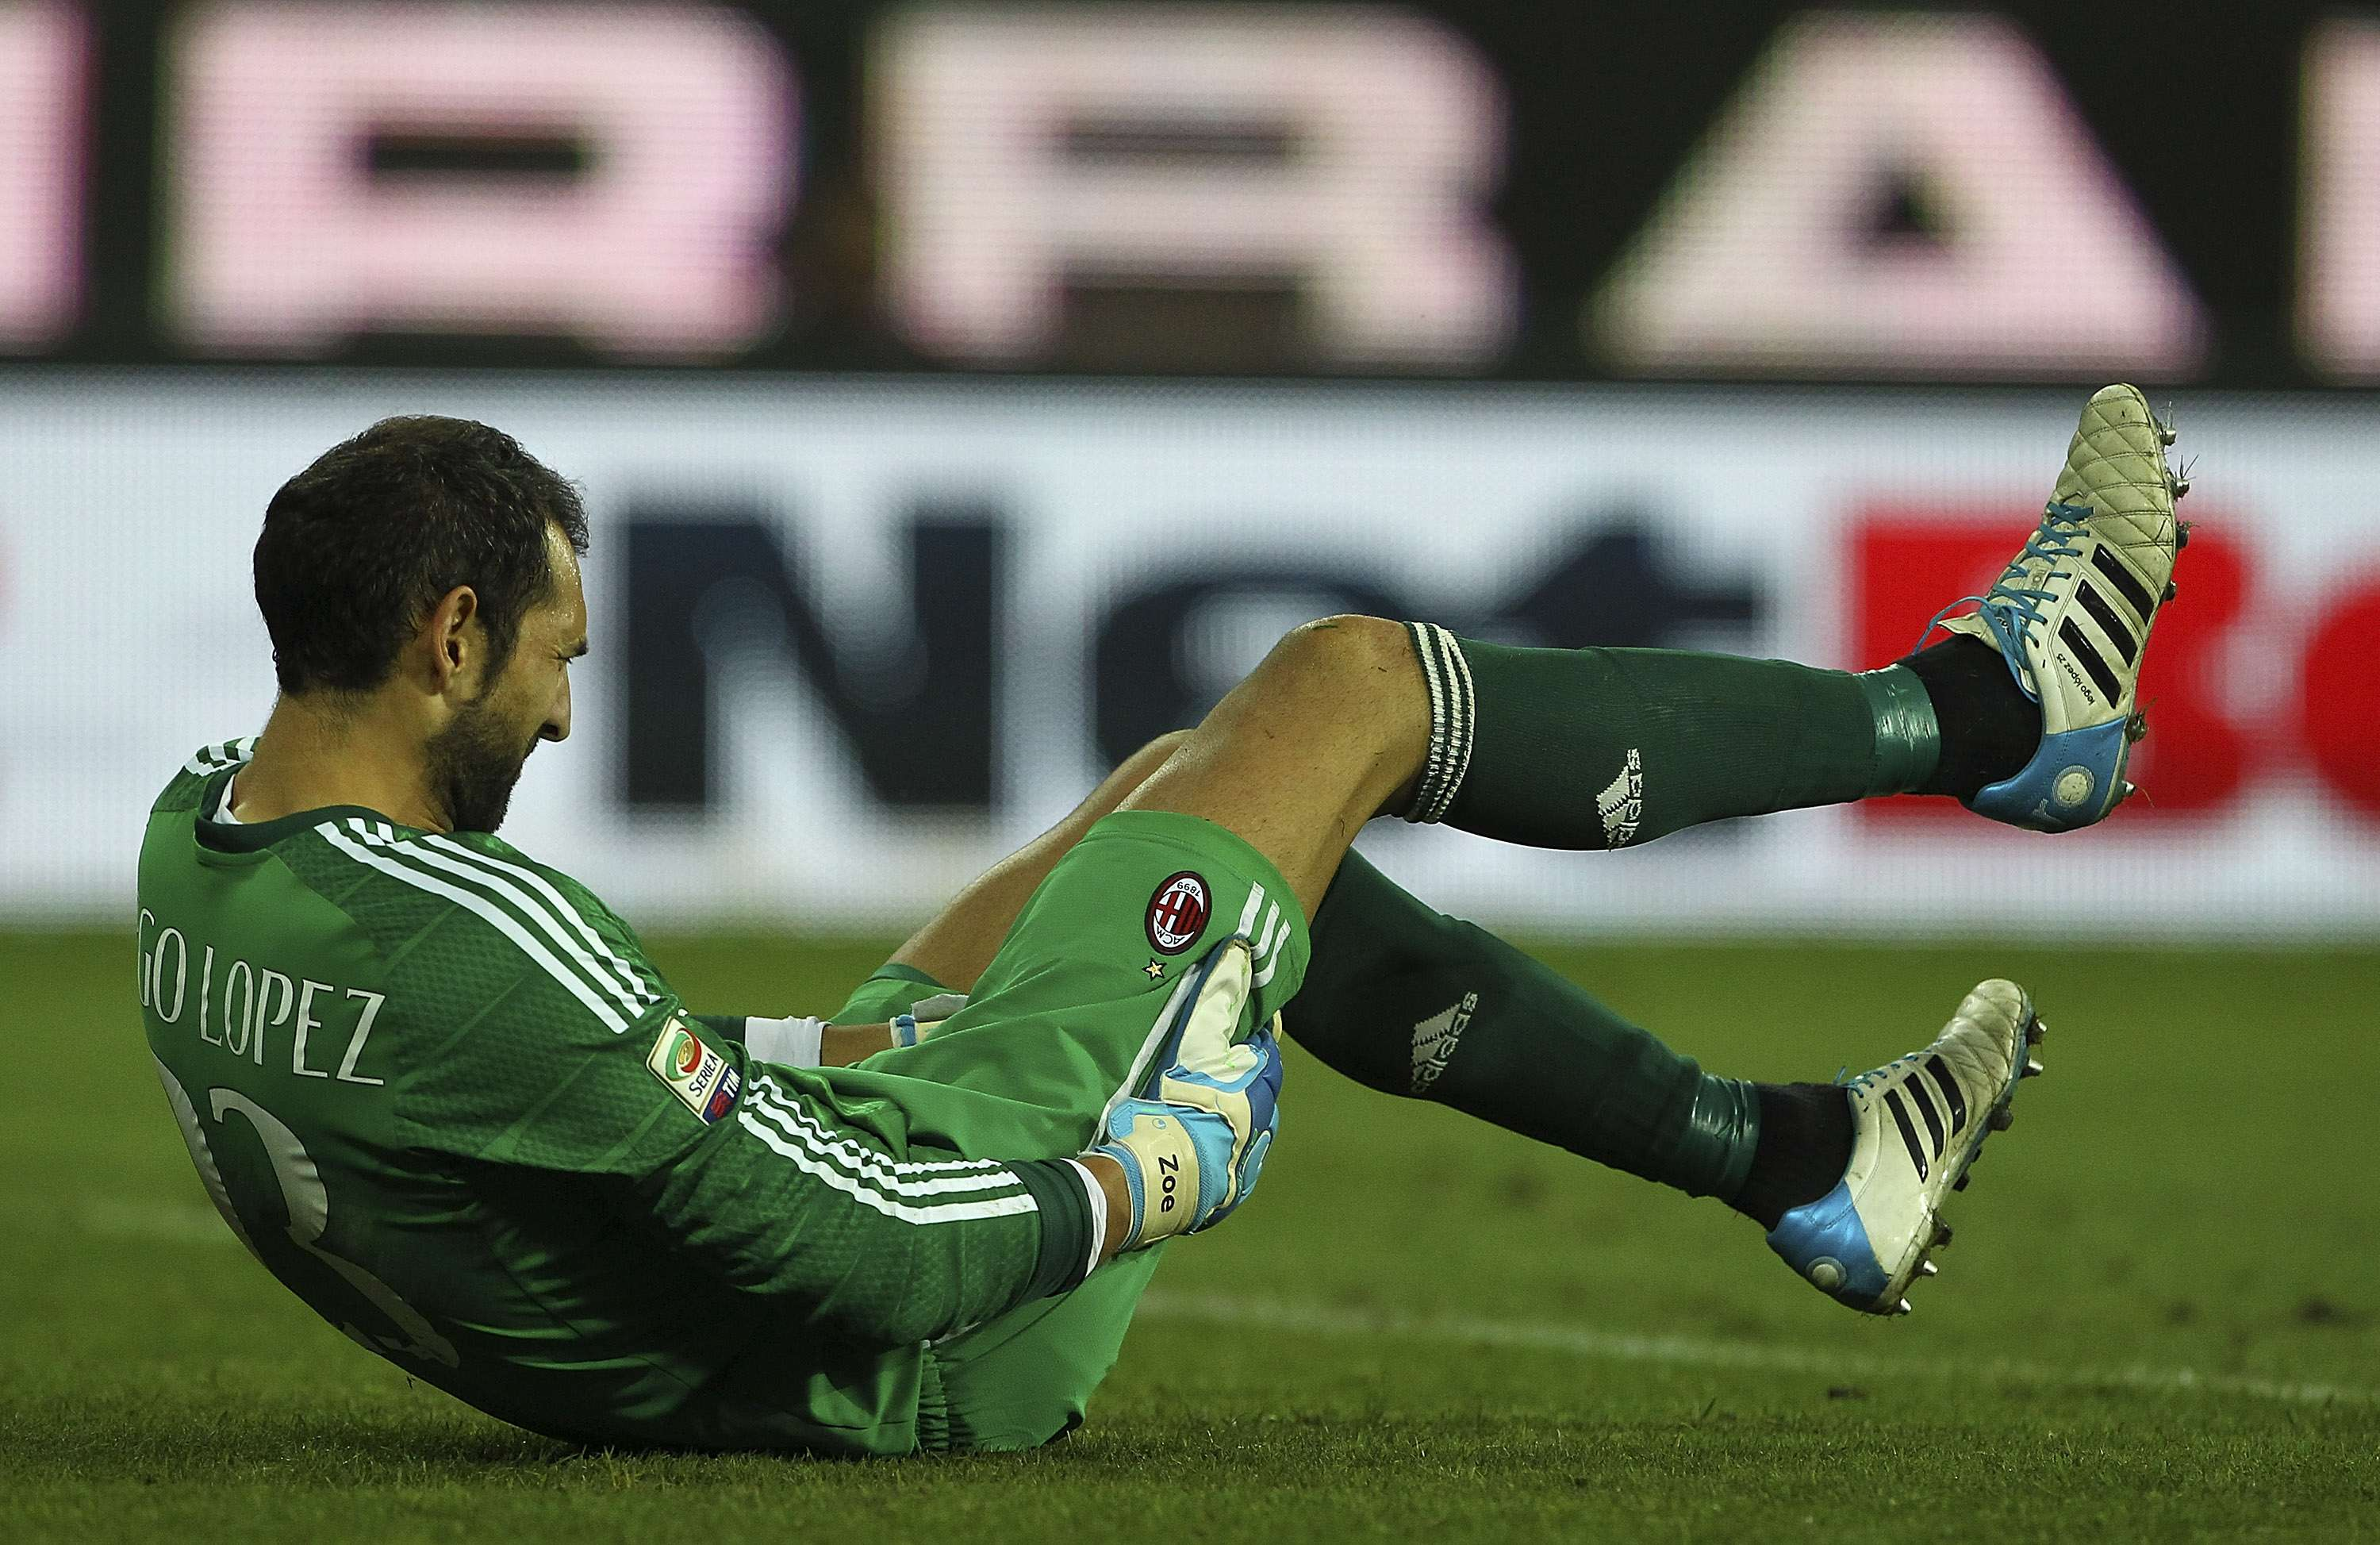 Diego Lopez Foto: Getty Images